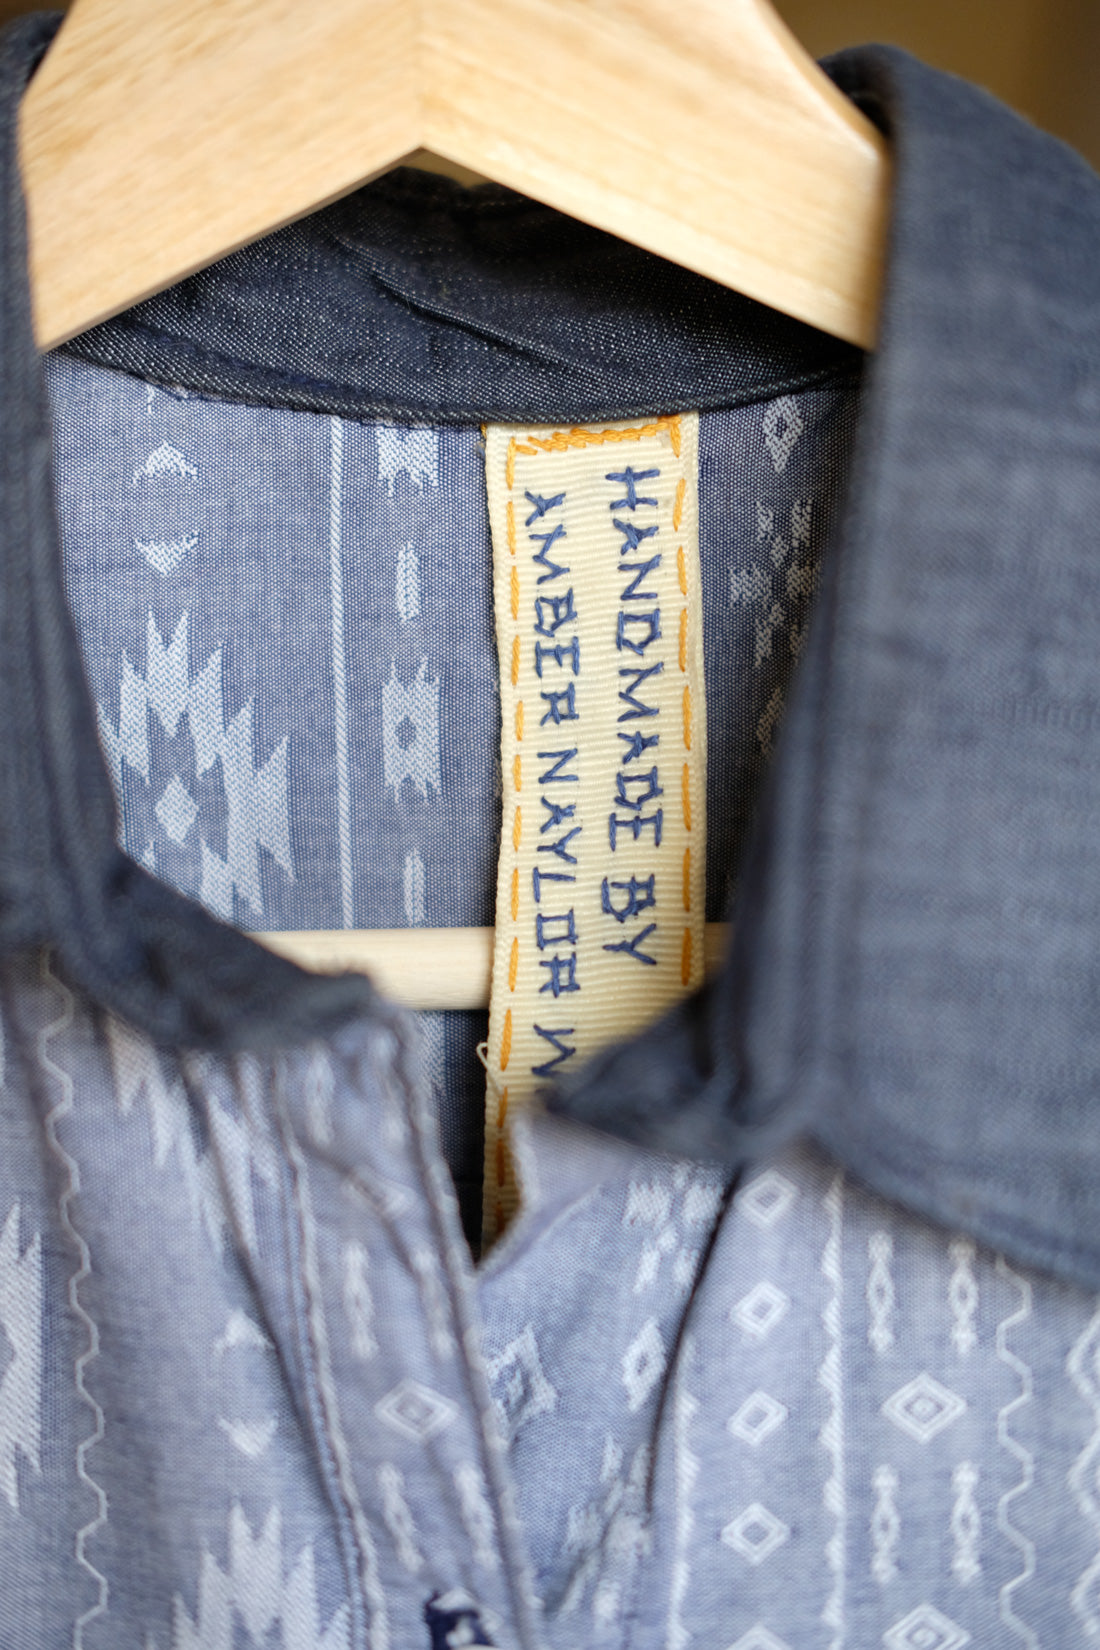 Hand-stitched clothing tag